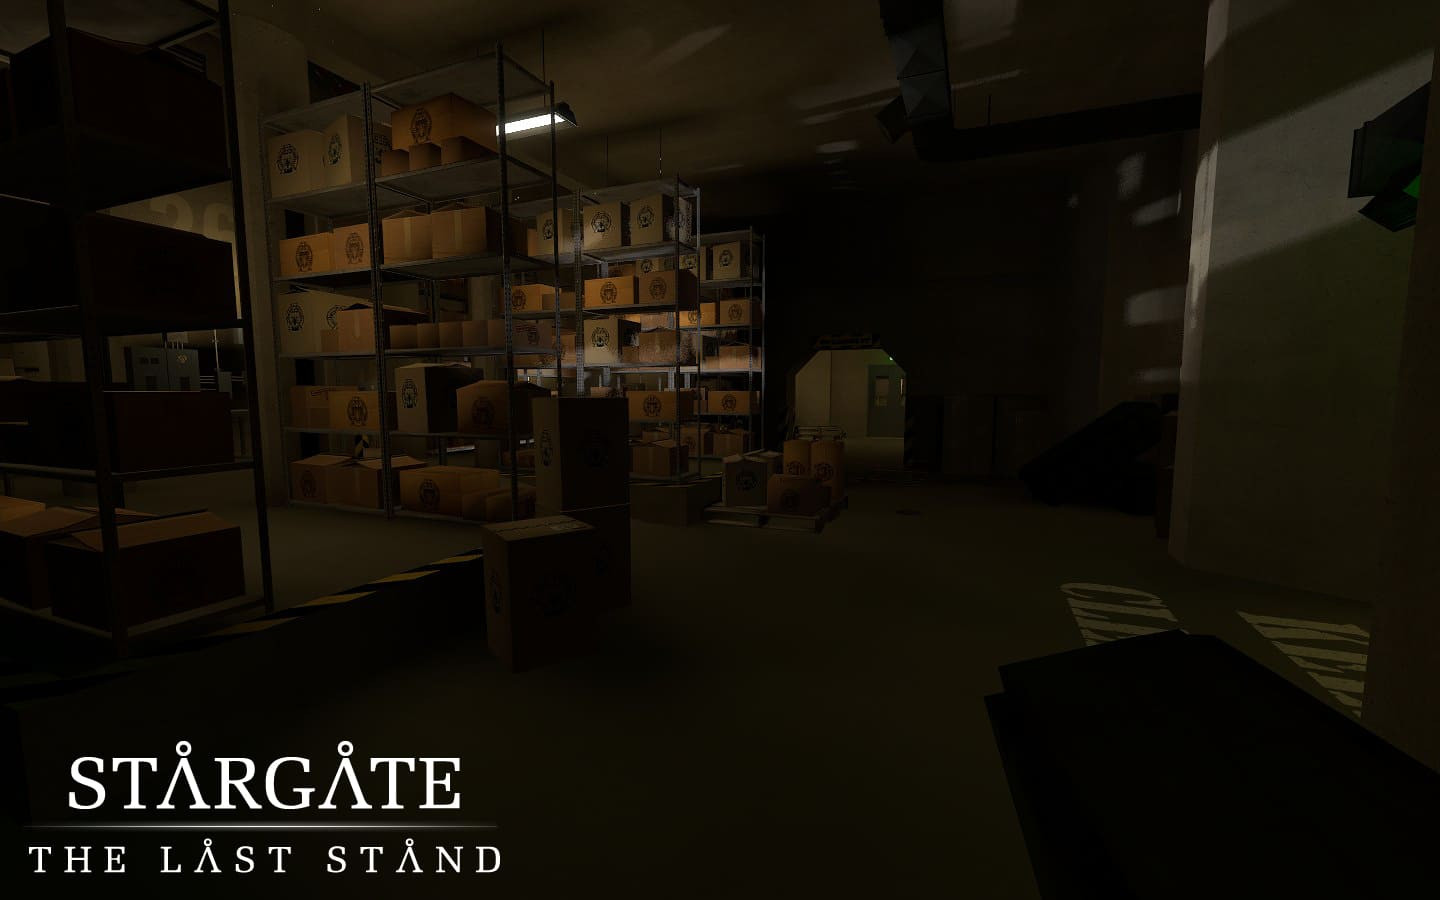 Stargate The Last Stand